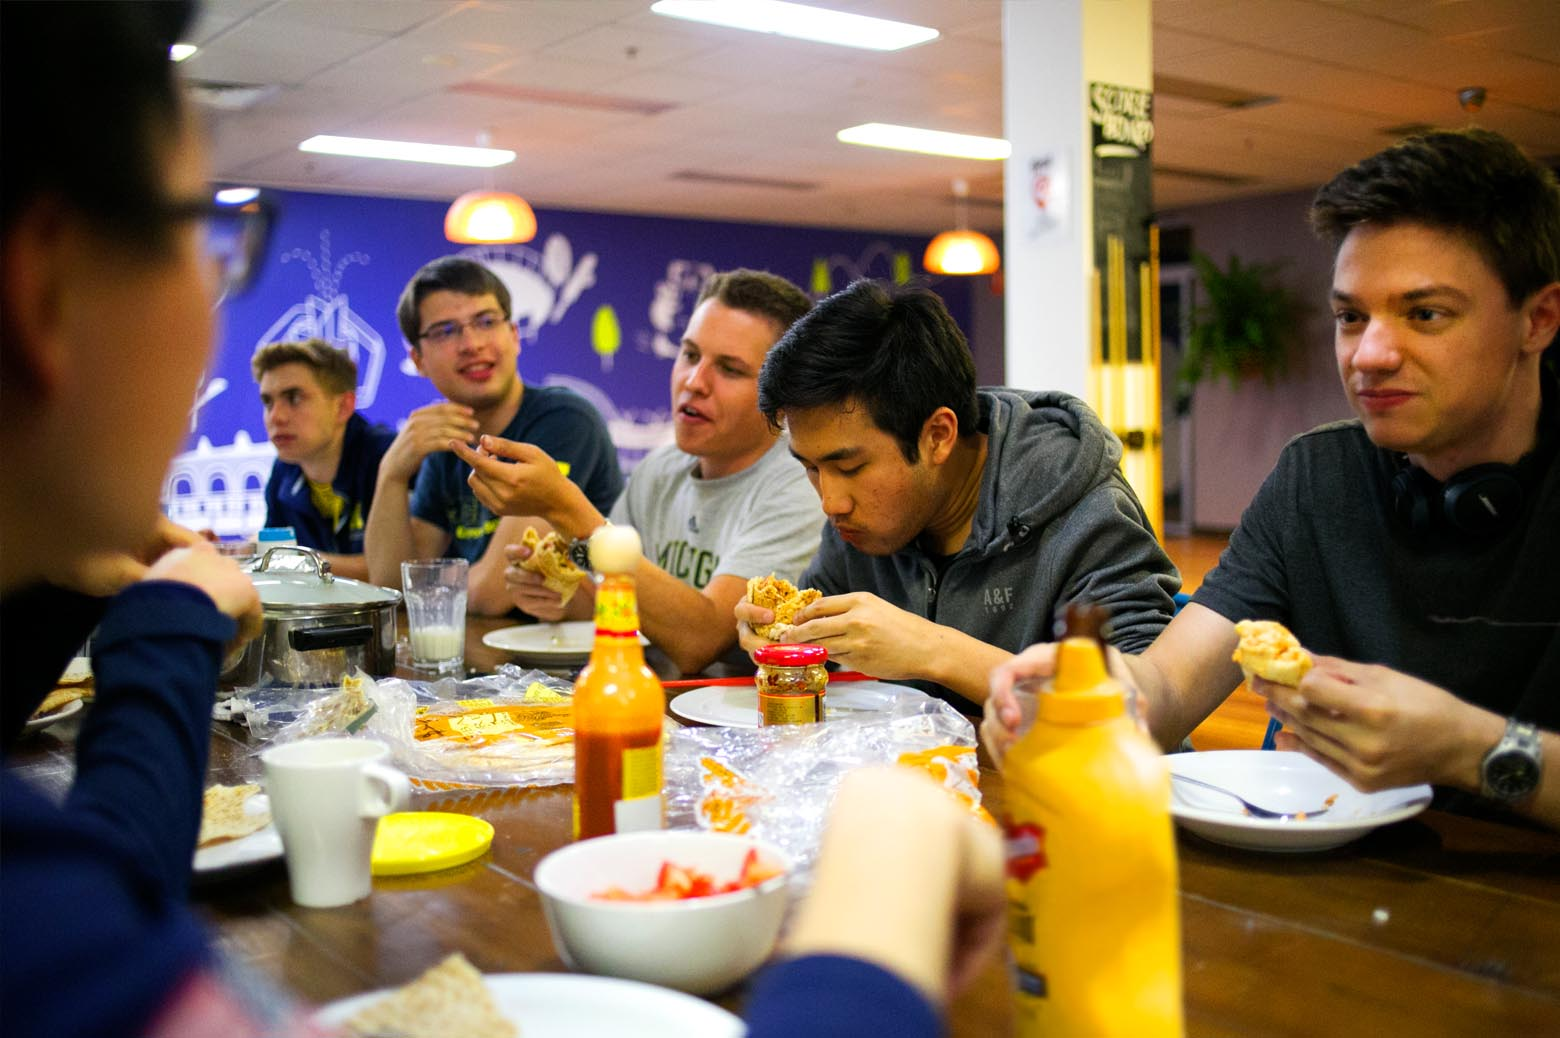 The crew sits down at the hostel dinner table to eat chicken pita wraps